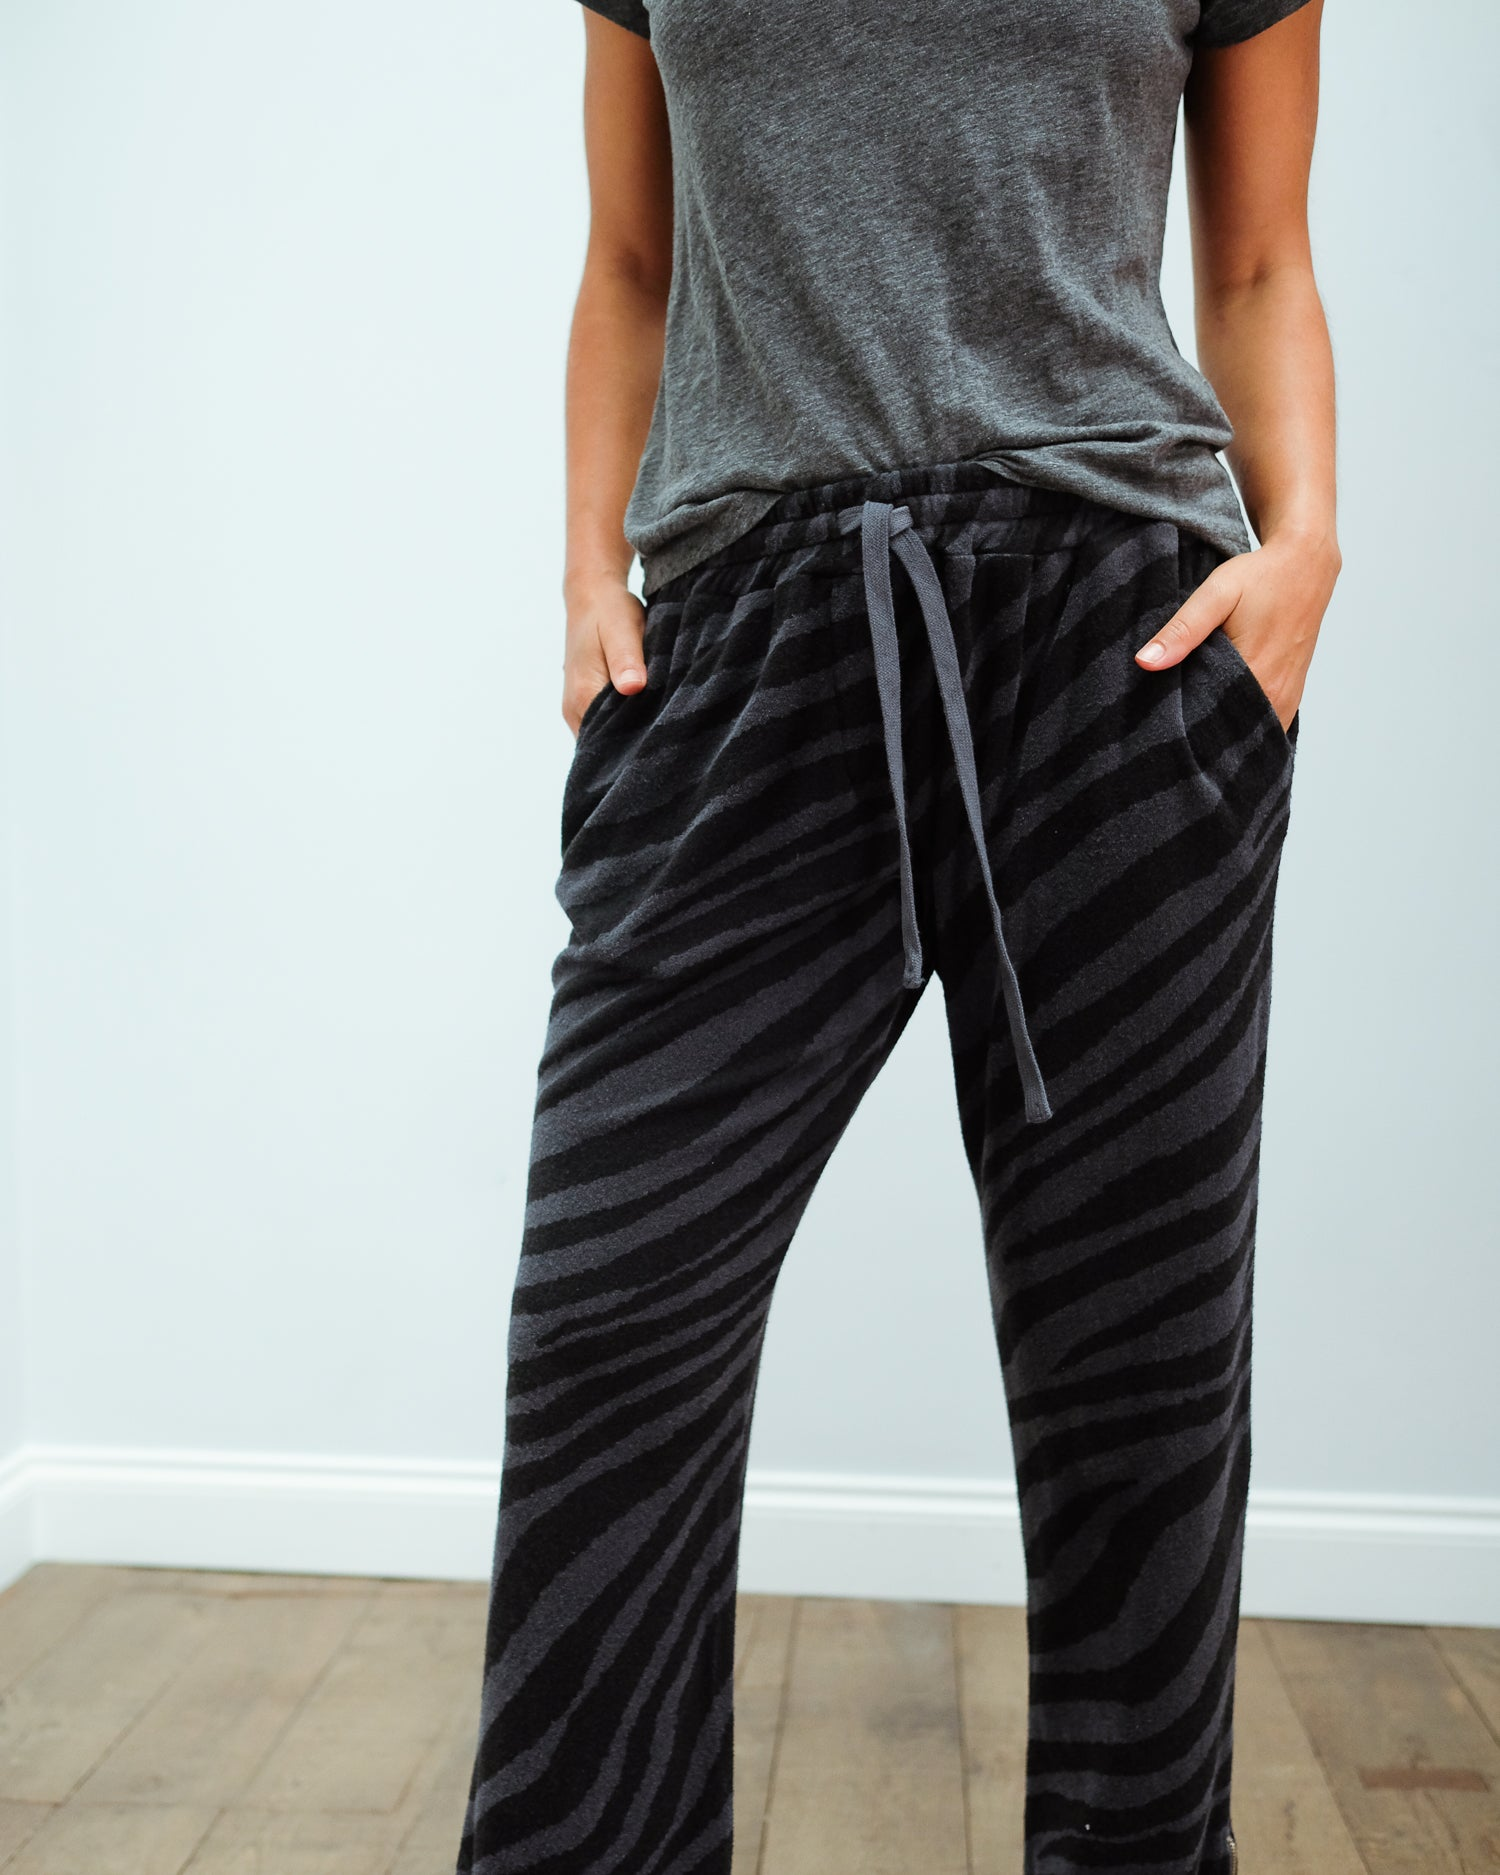 JU Zebra terry joggers in charcoal